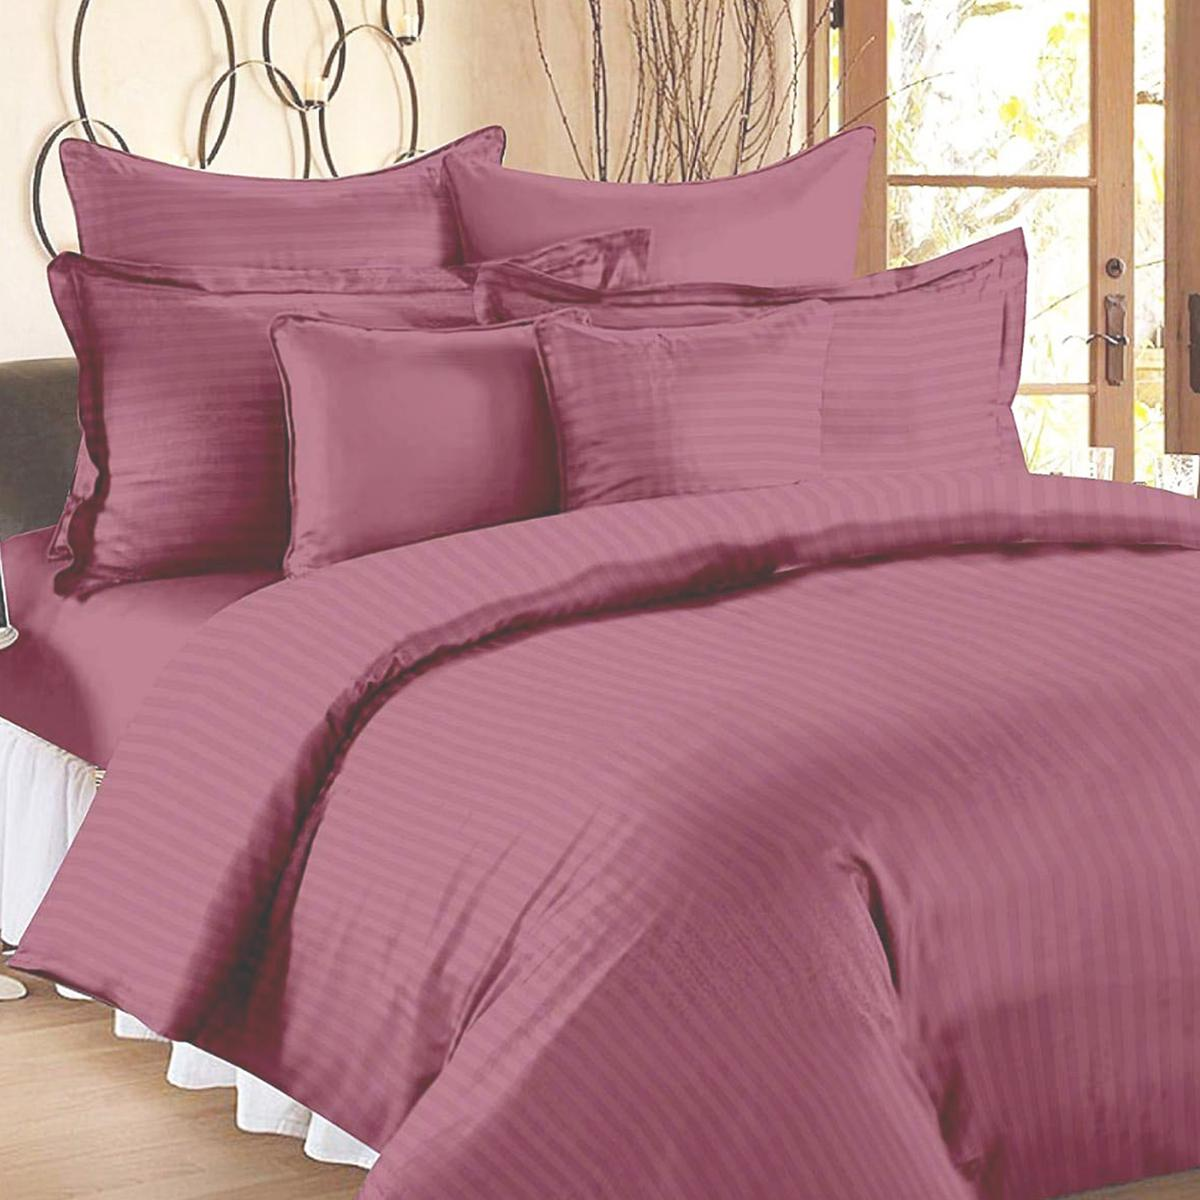 Amazing Mauve Colored Self Design Cotton Double Bedsheet With Pillow Cover